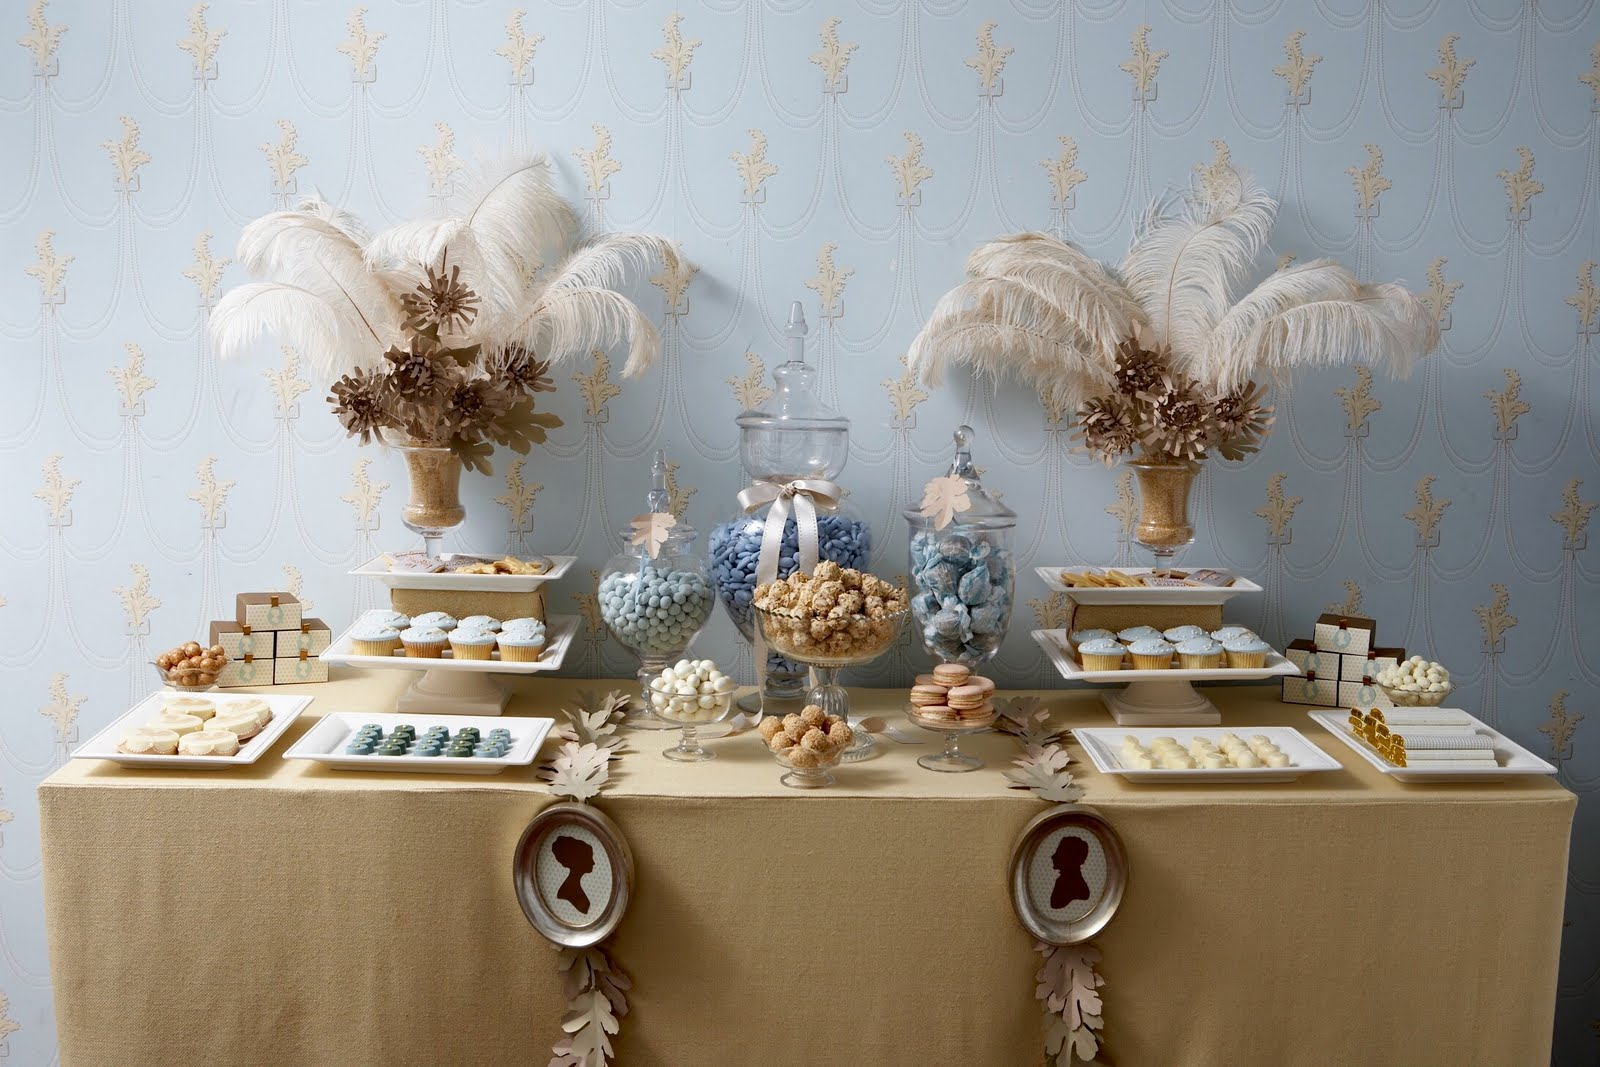 wedding-dessert-table-ideas-006